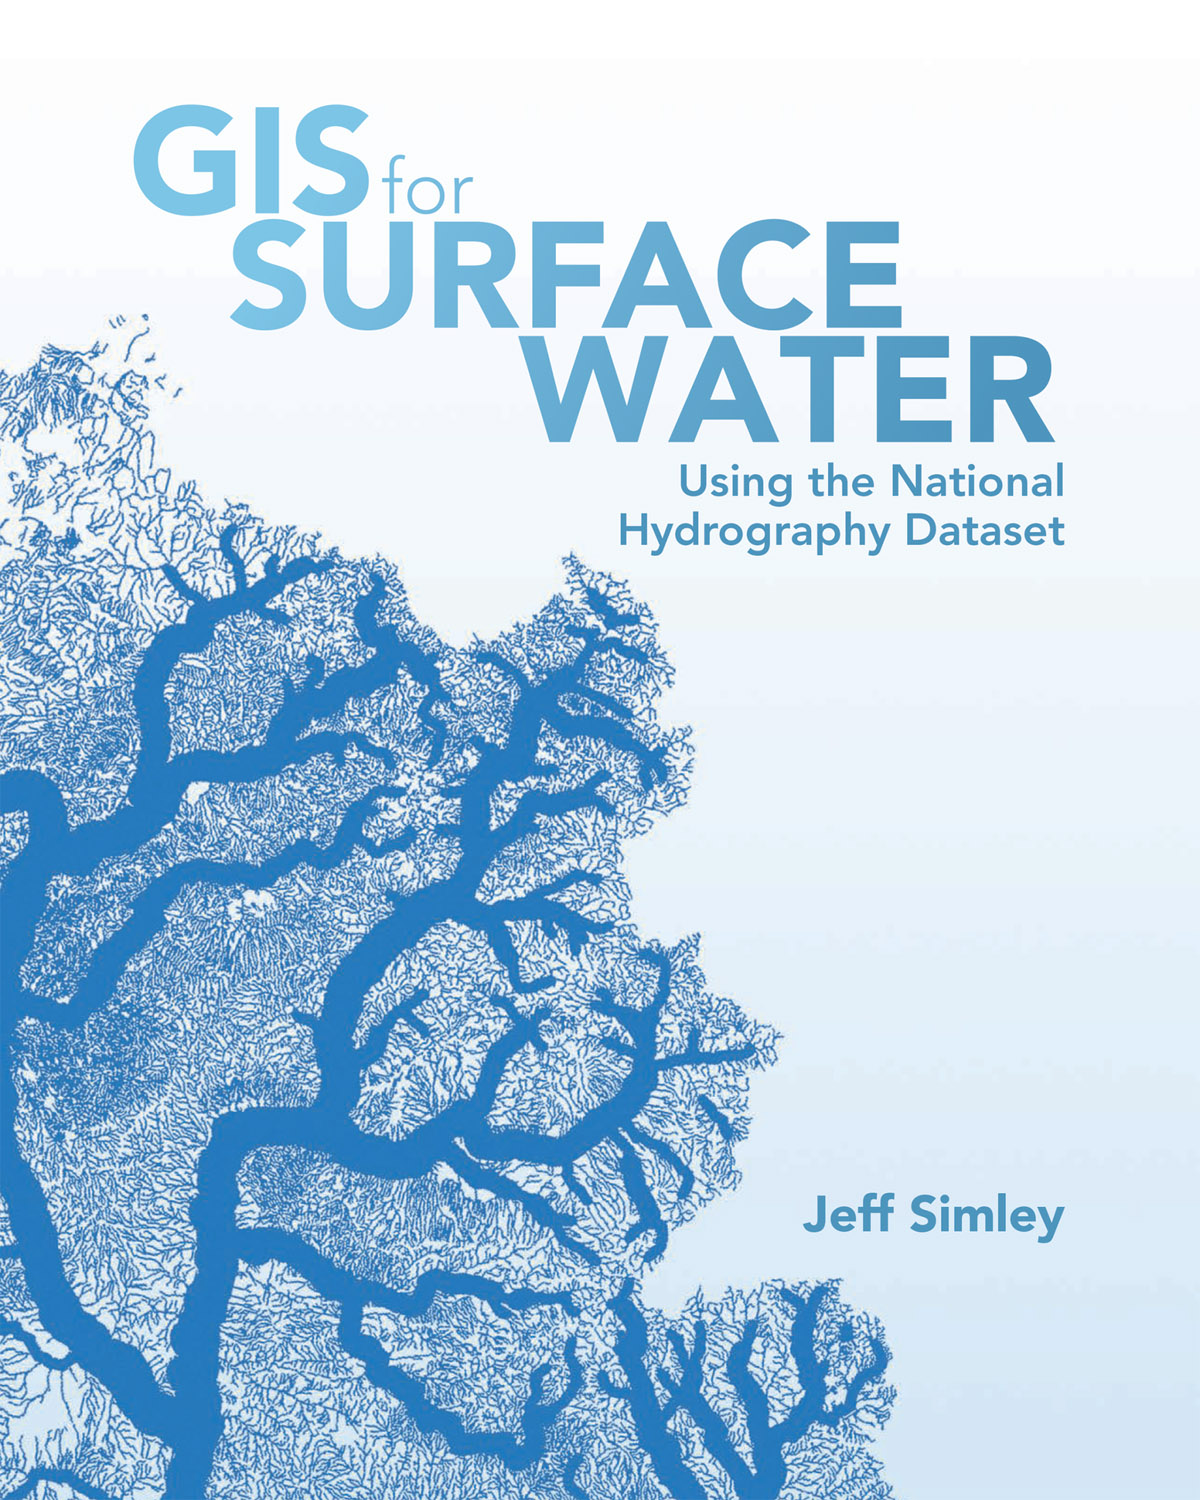 Esri has published GIS for Surface Water: Using the National Hydrography Dataset.